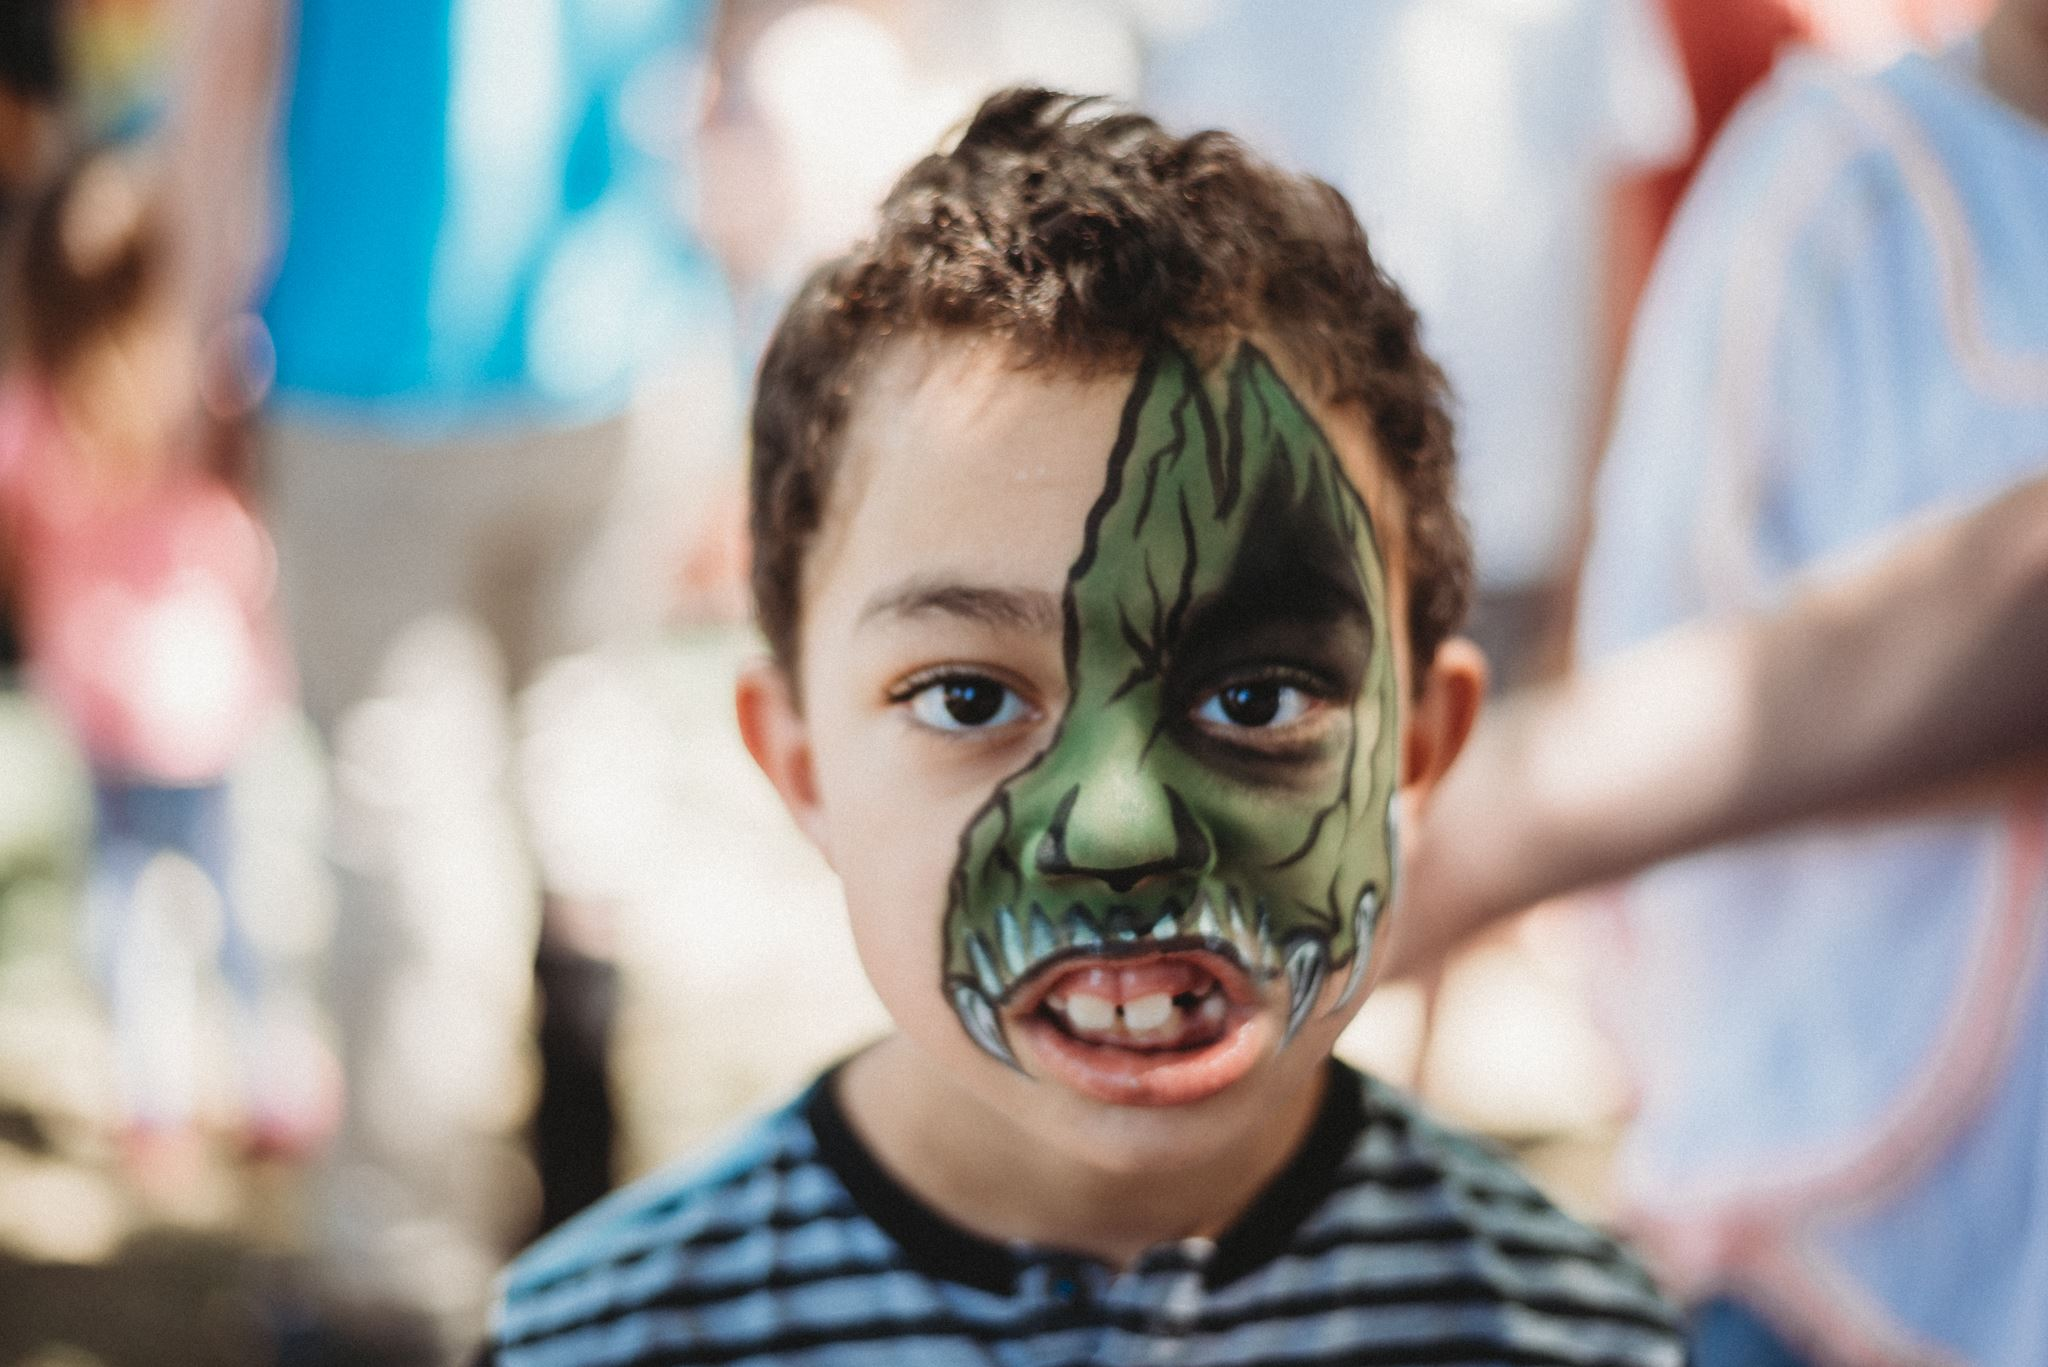 Boy with Dinosaur Face Paint Making a Scary Face for the Camera